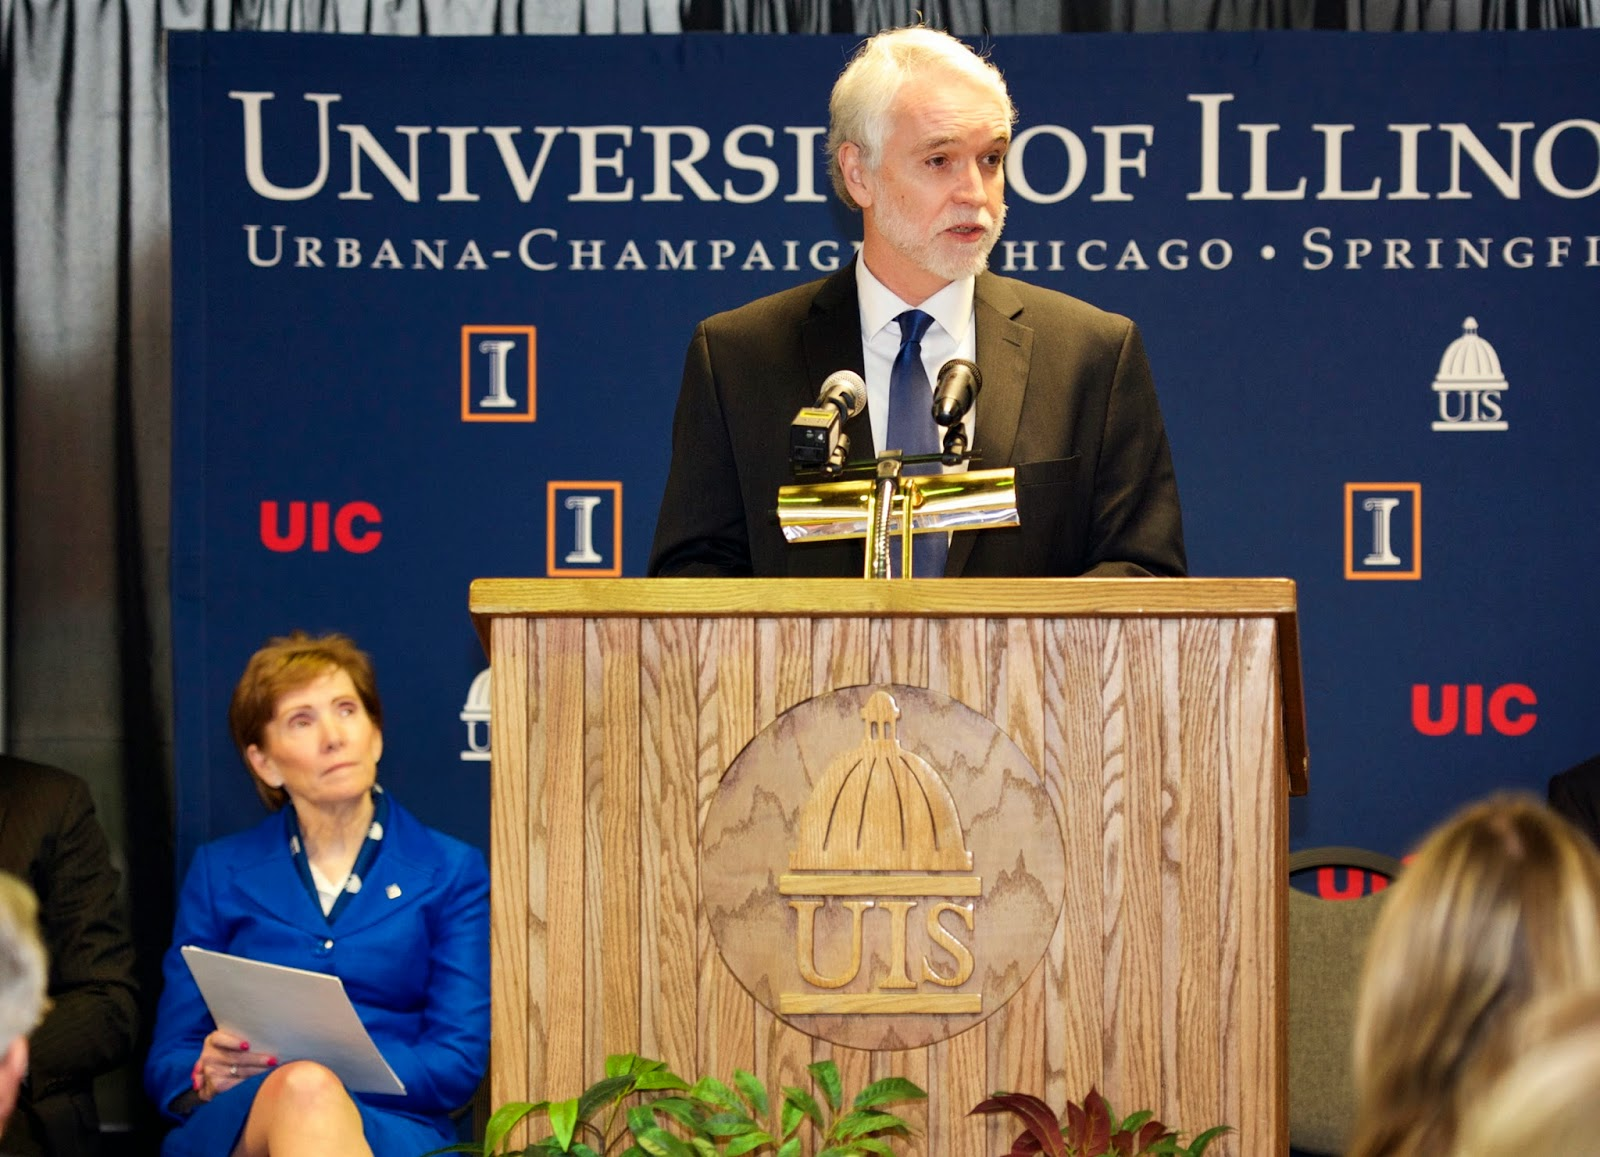 UIS News: UIS welcomes new University of Illinois President